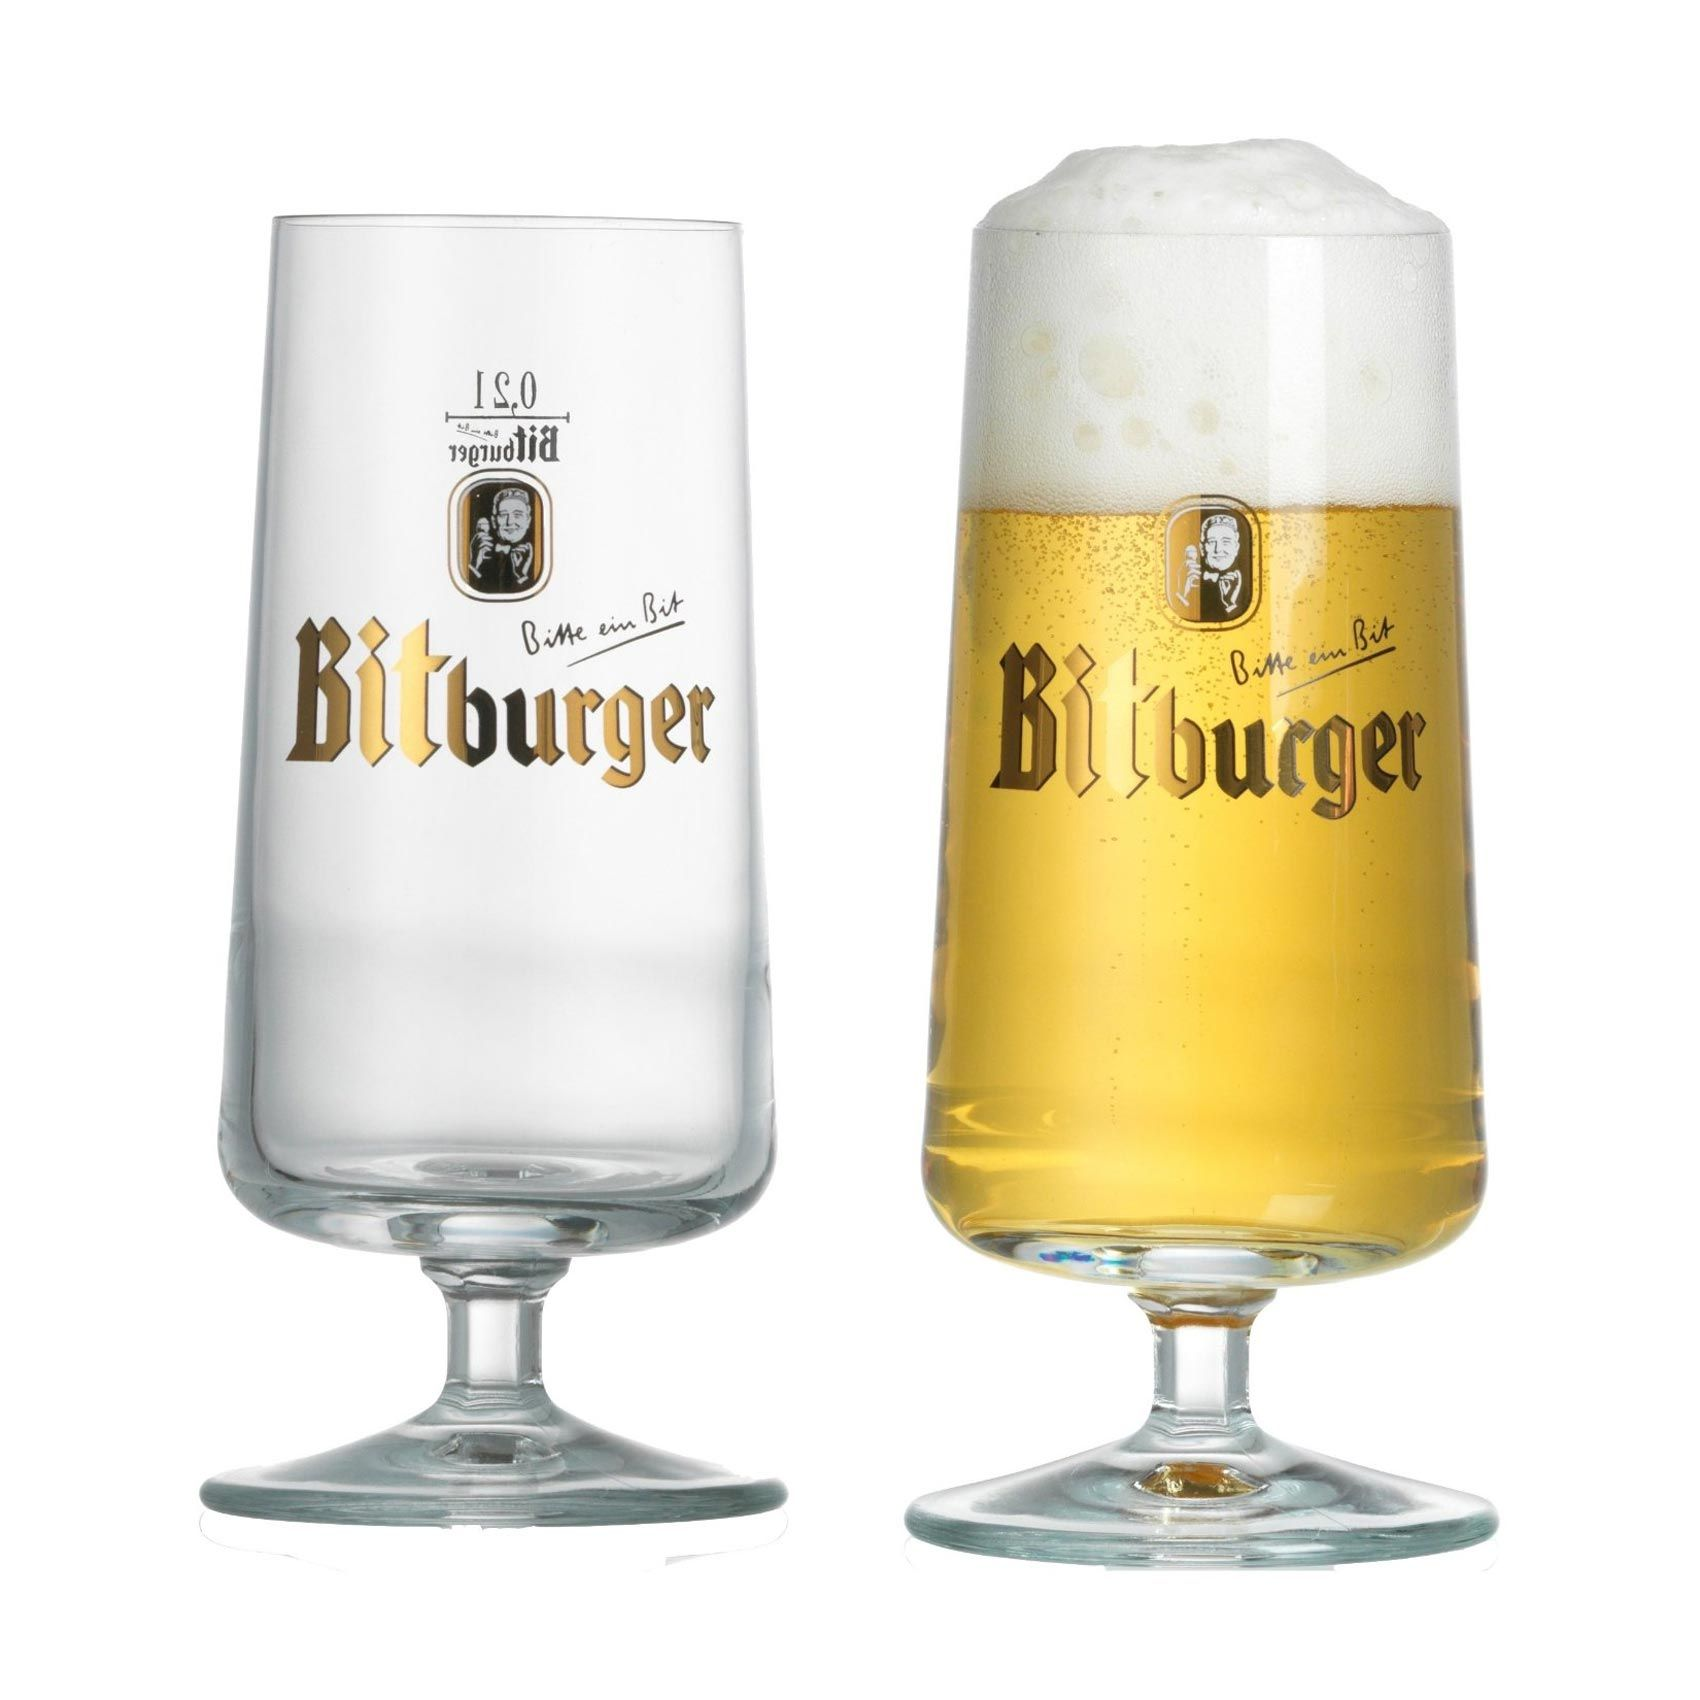 Cocktailgläser cocktail gläser bitburger biergläser 0 2l 2er set mit logo